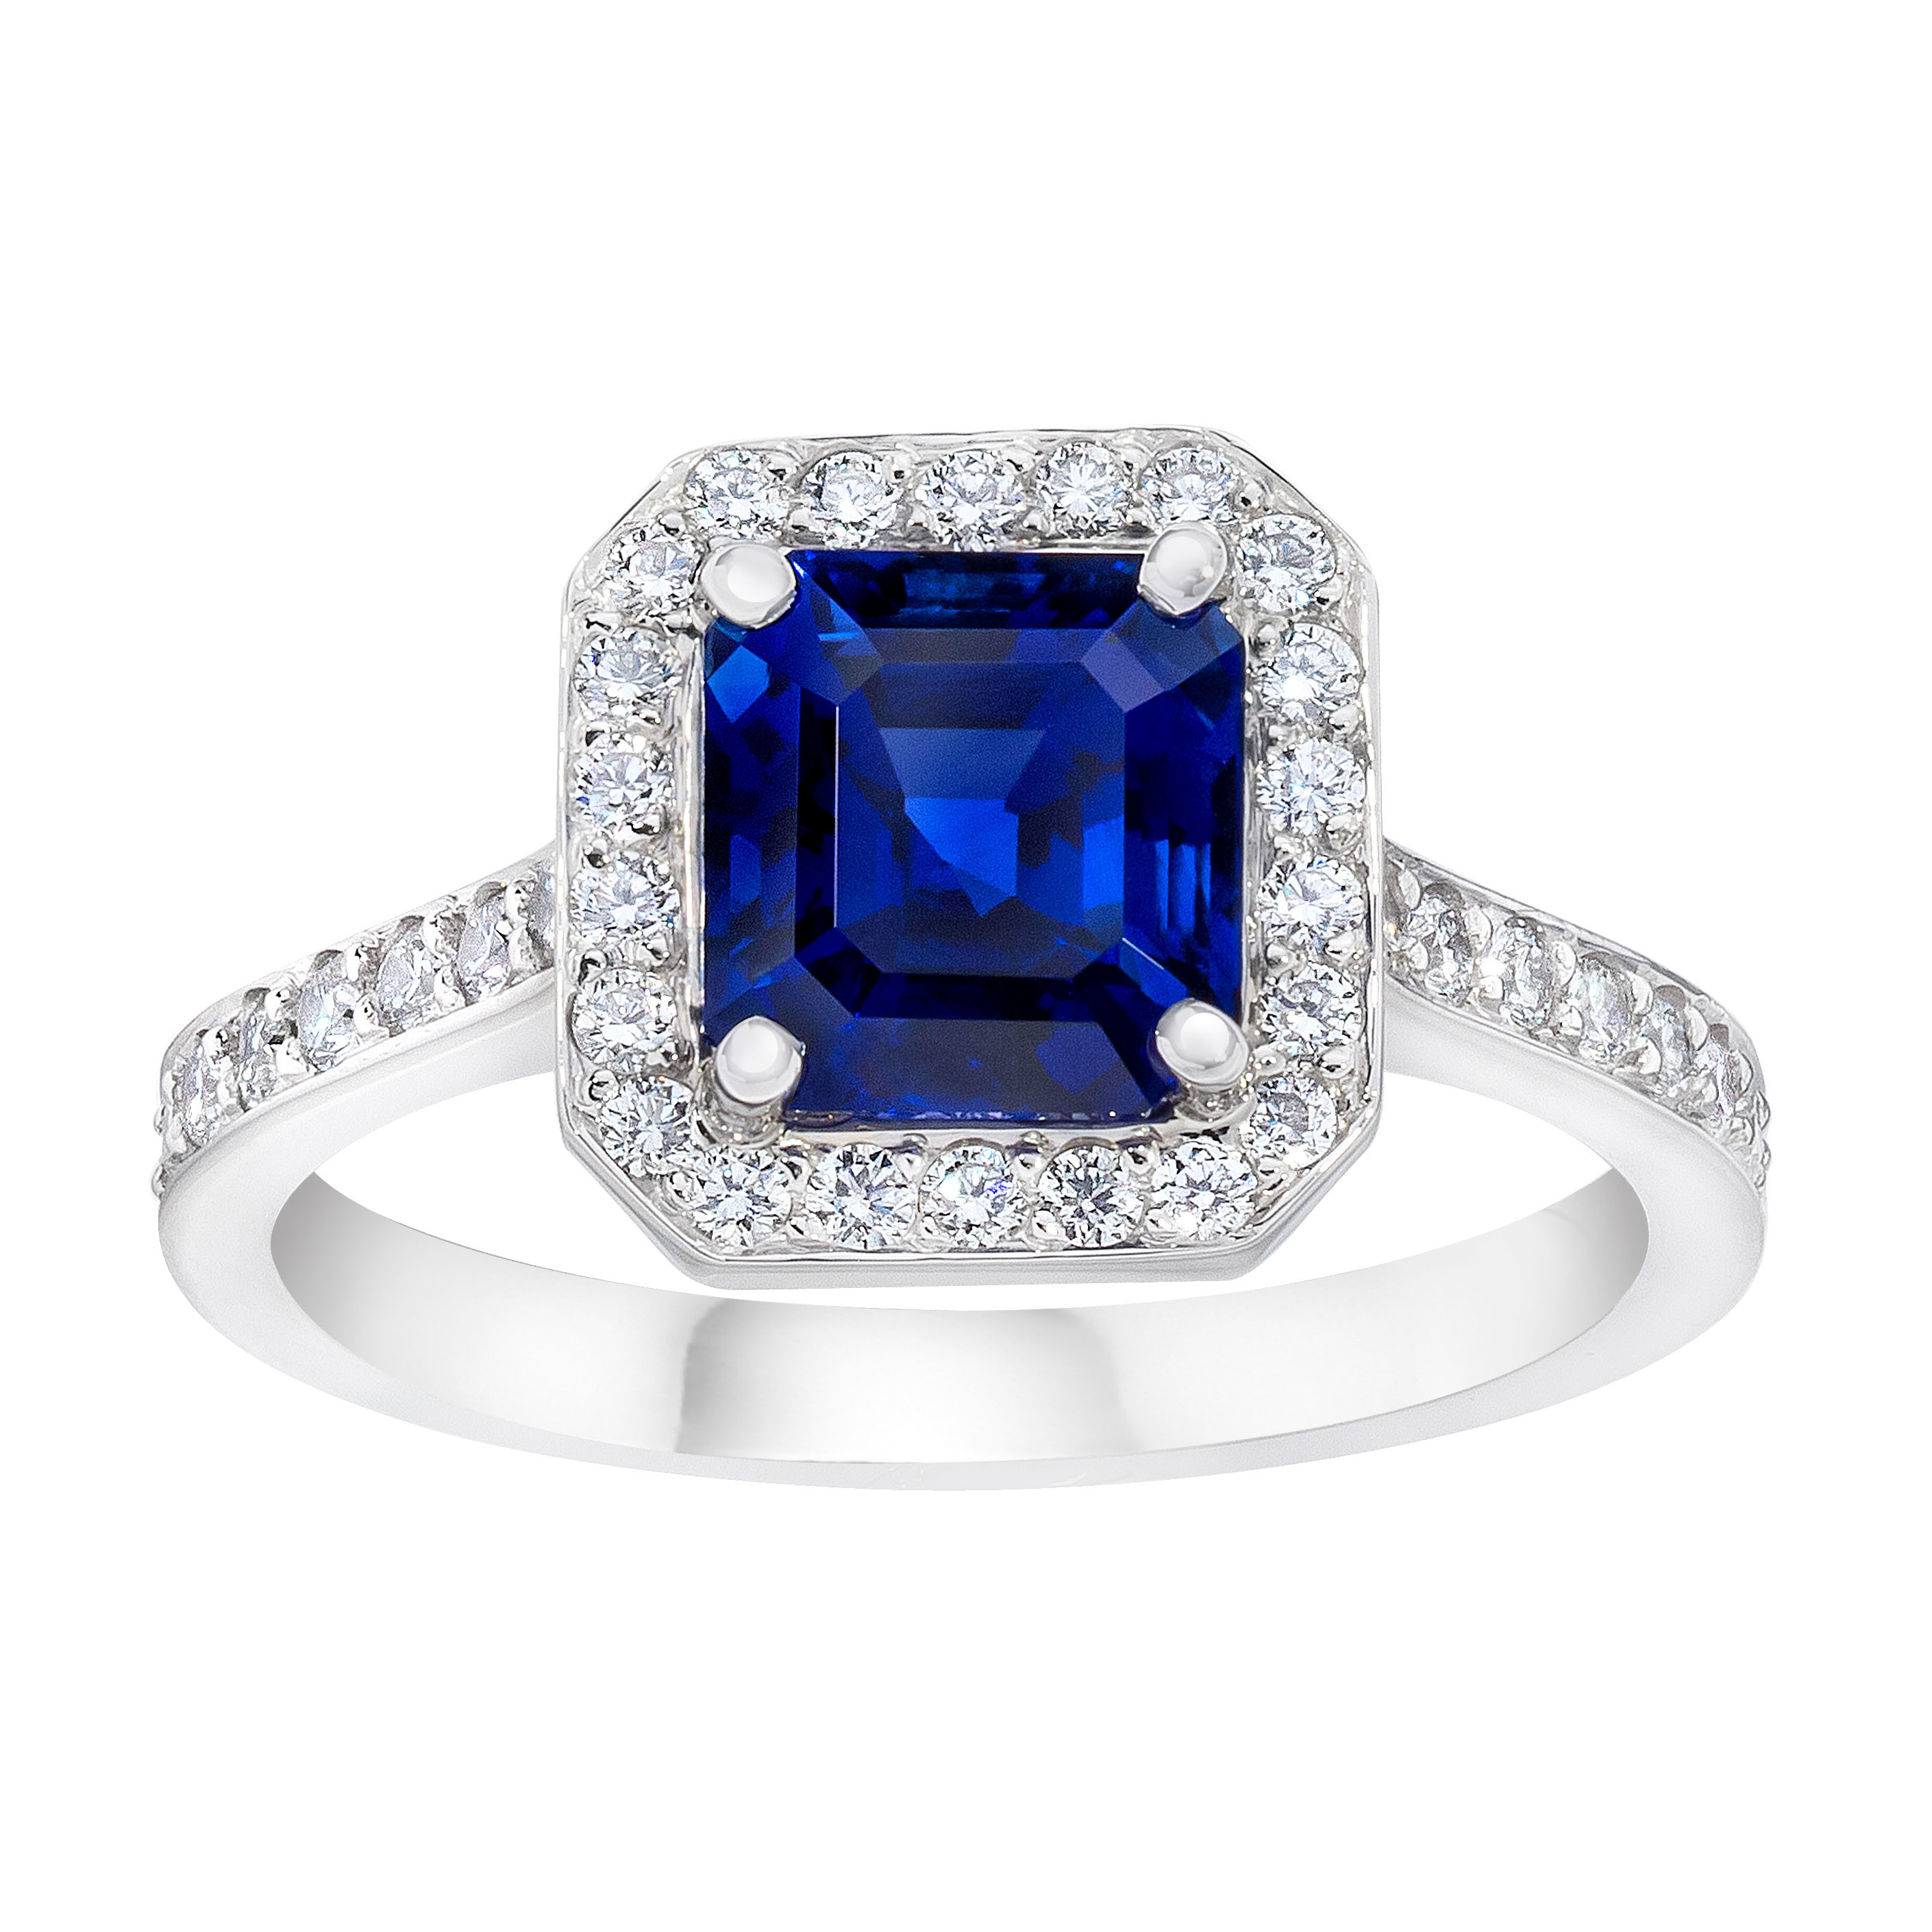 Sapphire Halo Ring – Rings – Fine Jewelry Throughout Newest Sparkling Square Halo Rings (View 17 of 25)